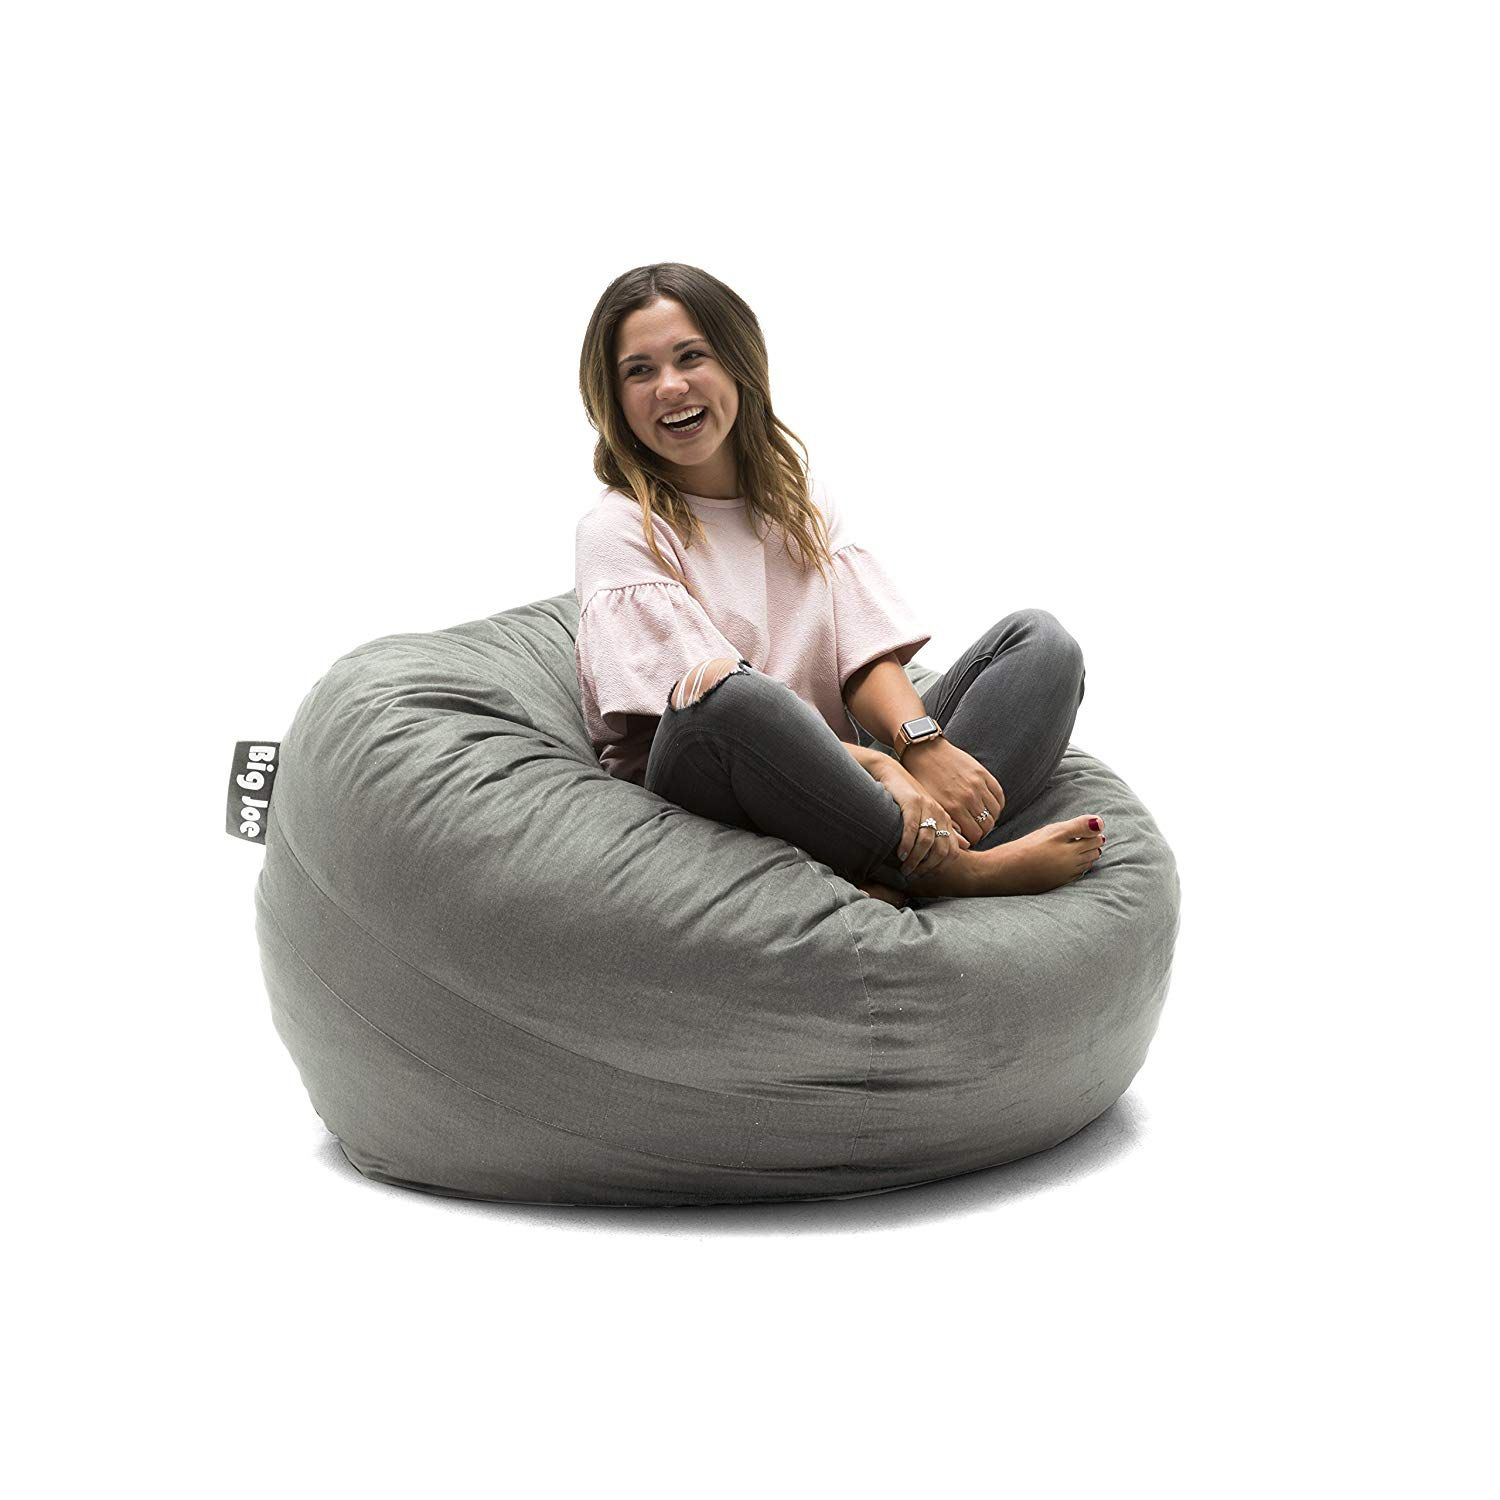 Pin on Giant Size Bean Bags